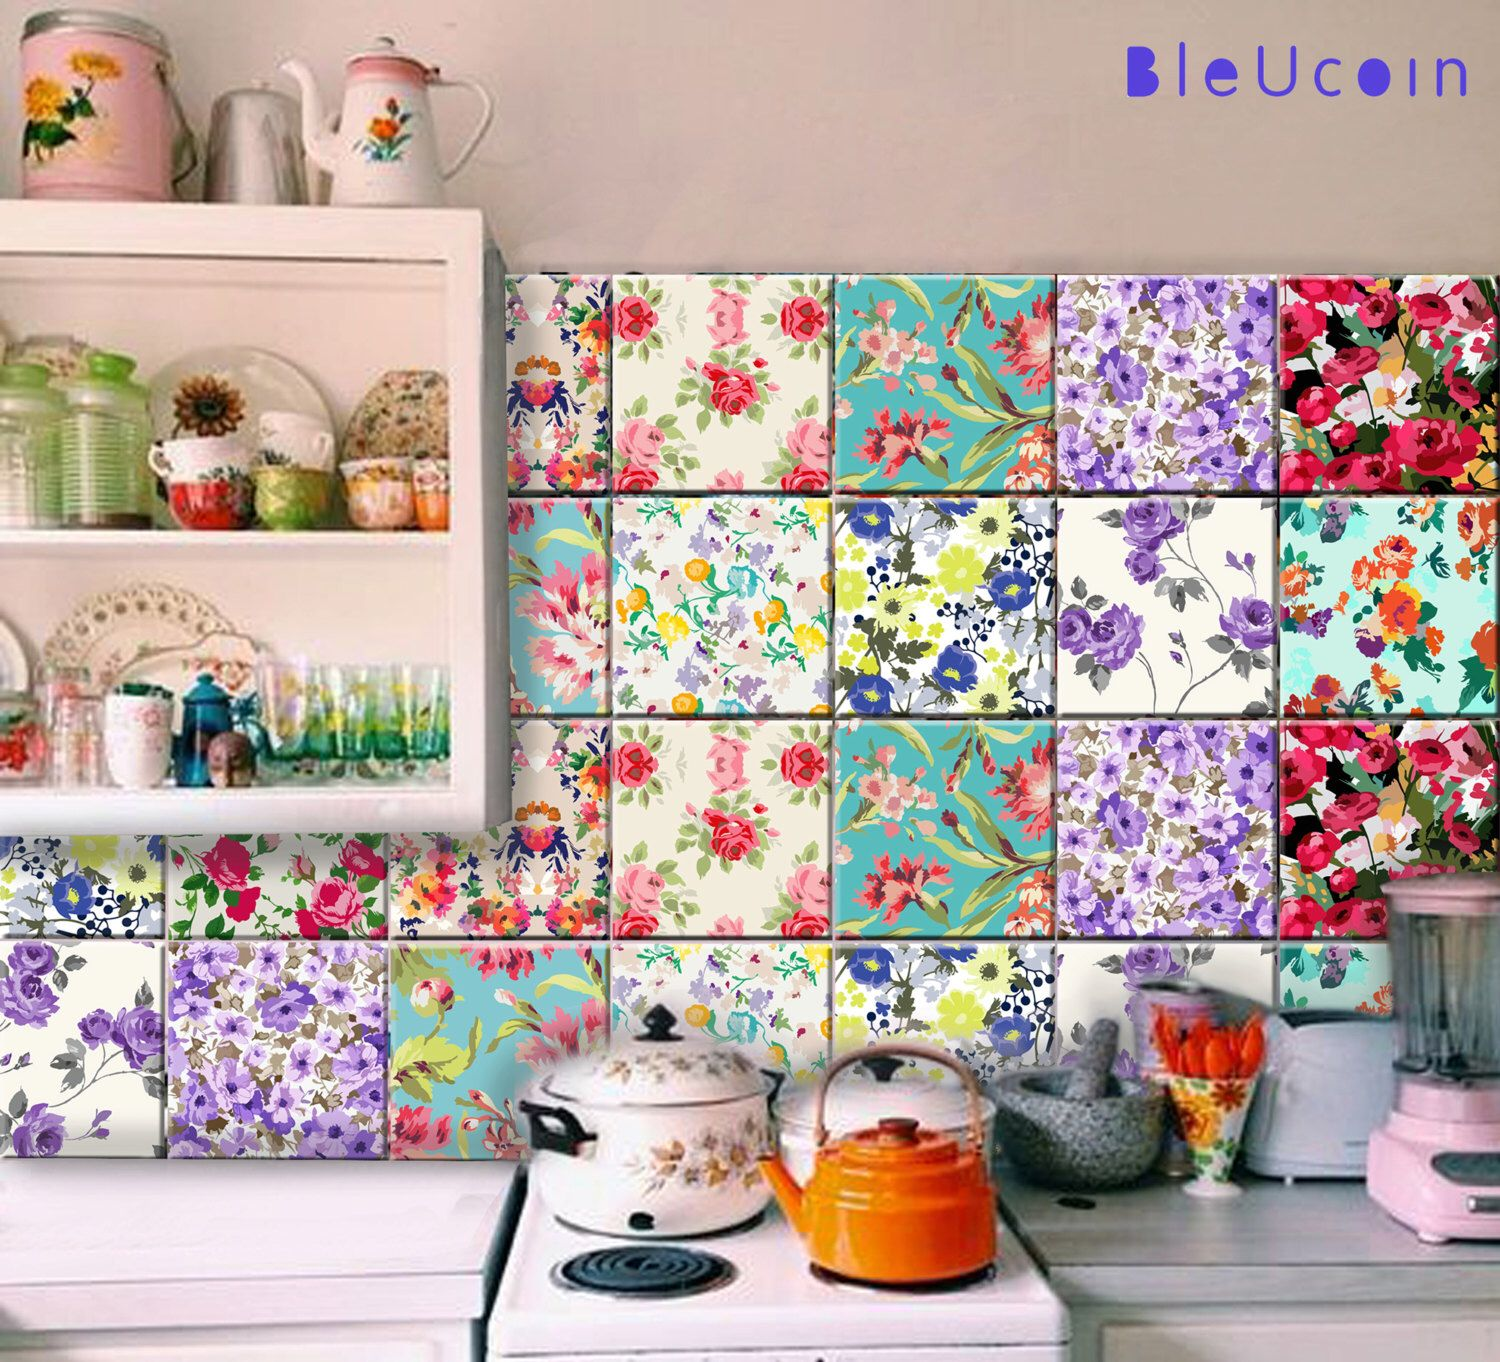 Floral Tile/Wall/ Stair Riser Decal, Kitchen Bathroom